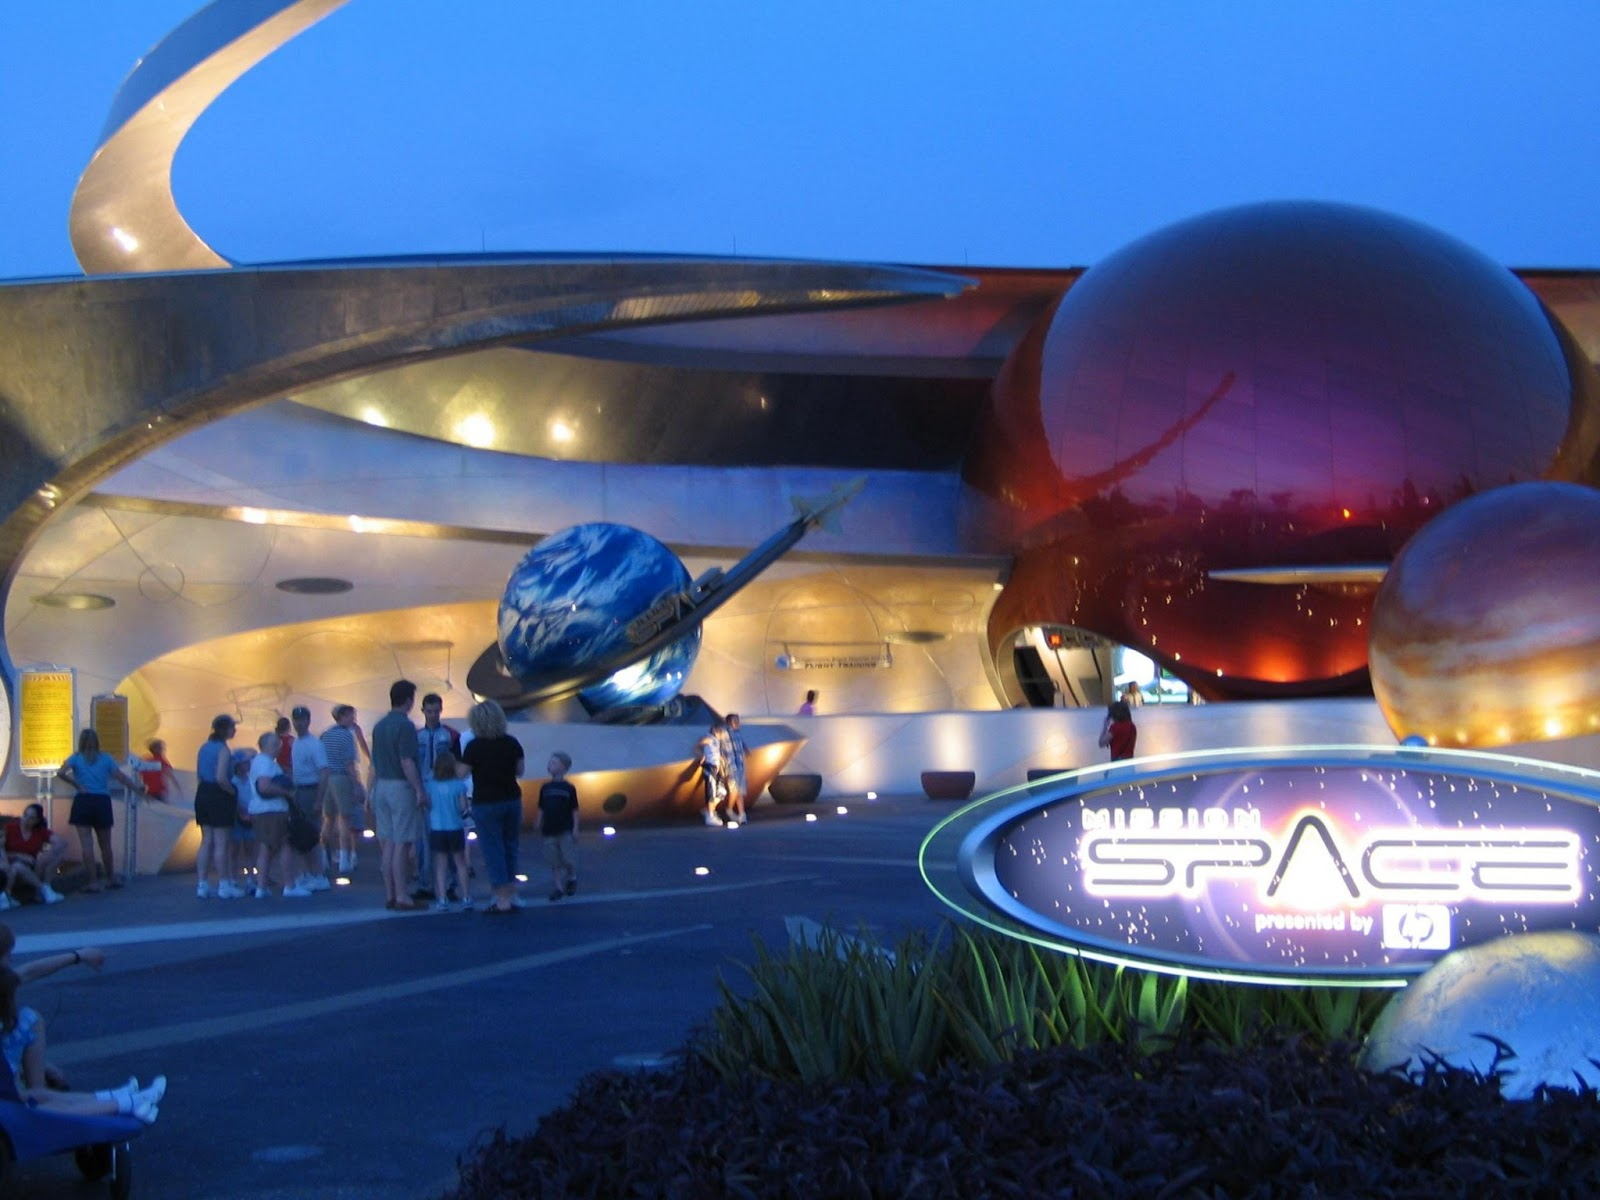 mission space ride at epcot - photo #8